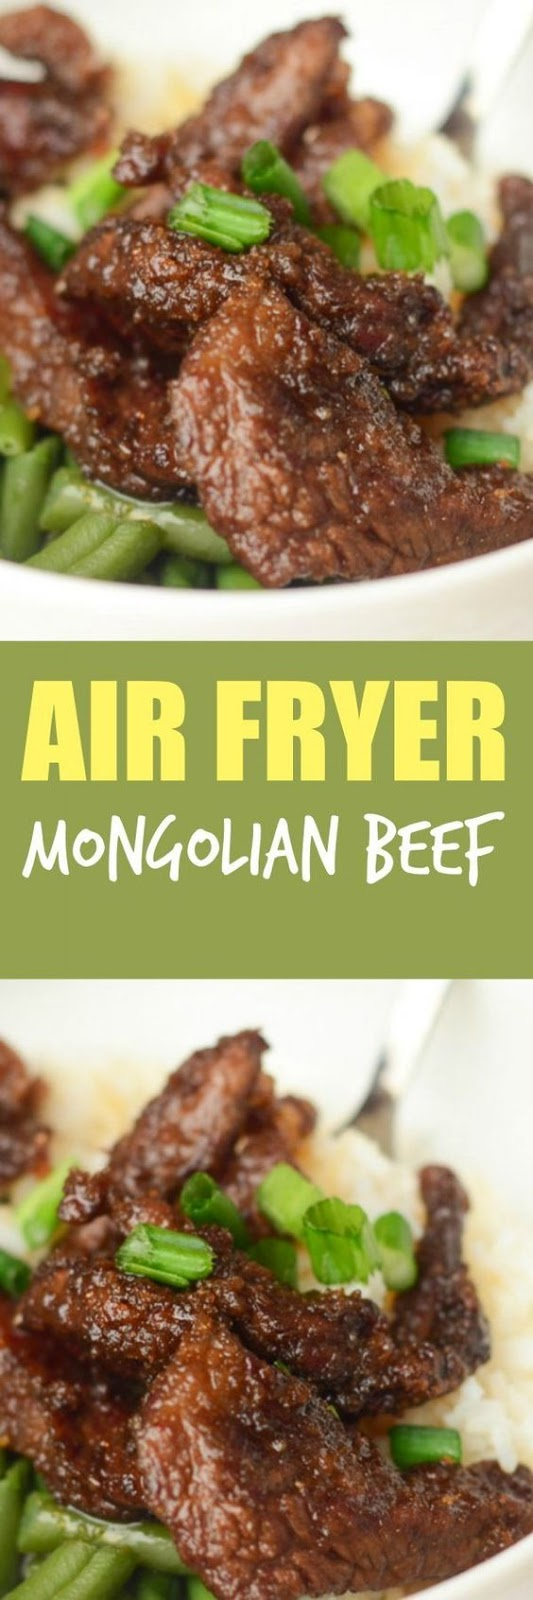 Air Fryer Mongolian Beef